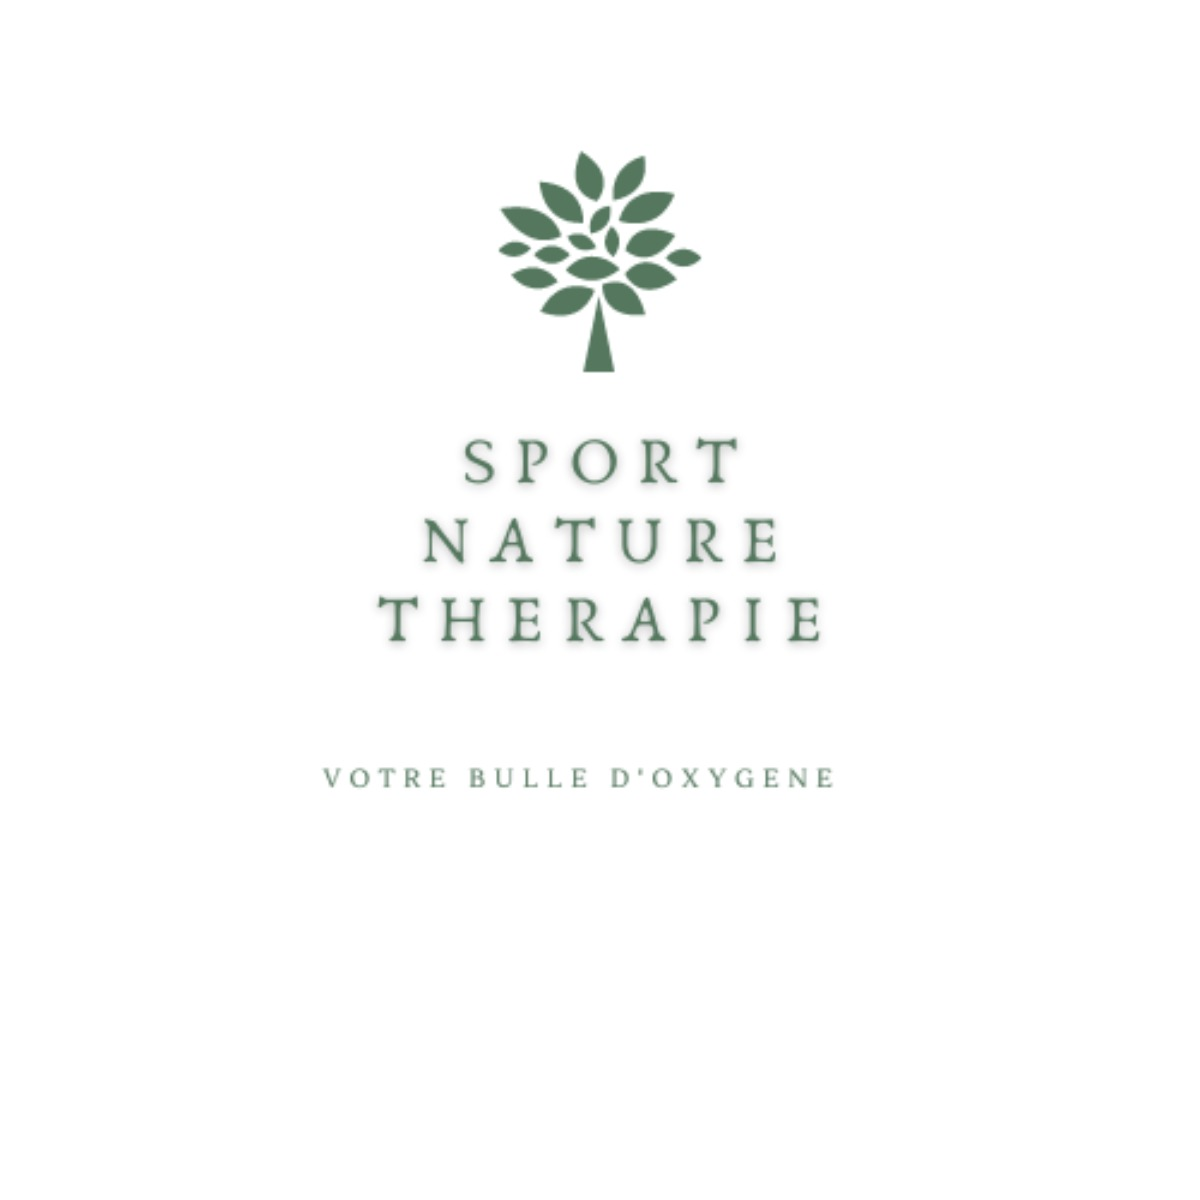 Logo-Sport-Nature-Thérapie-Blanc